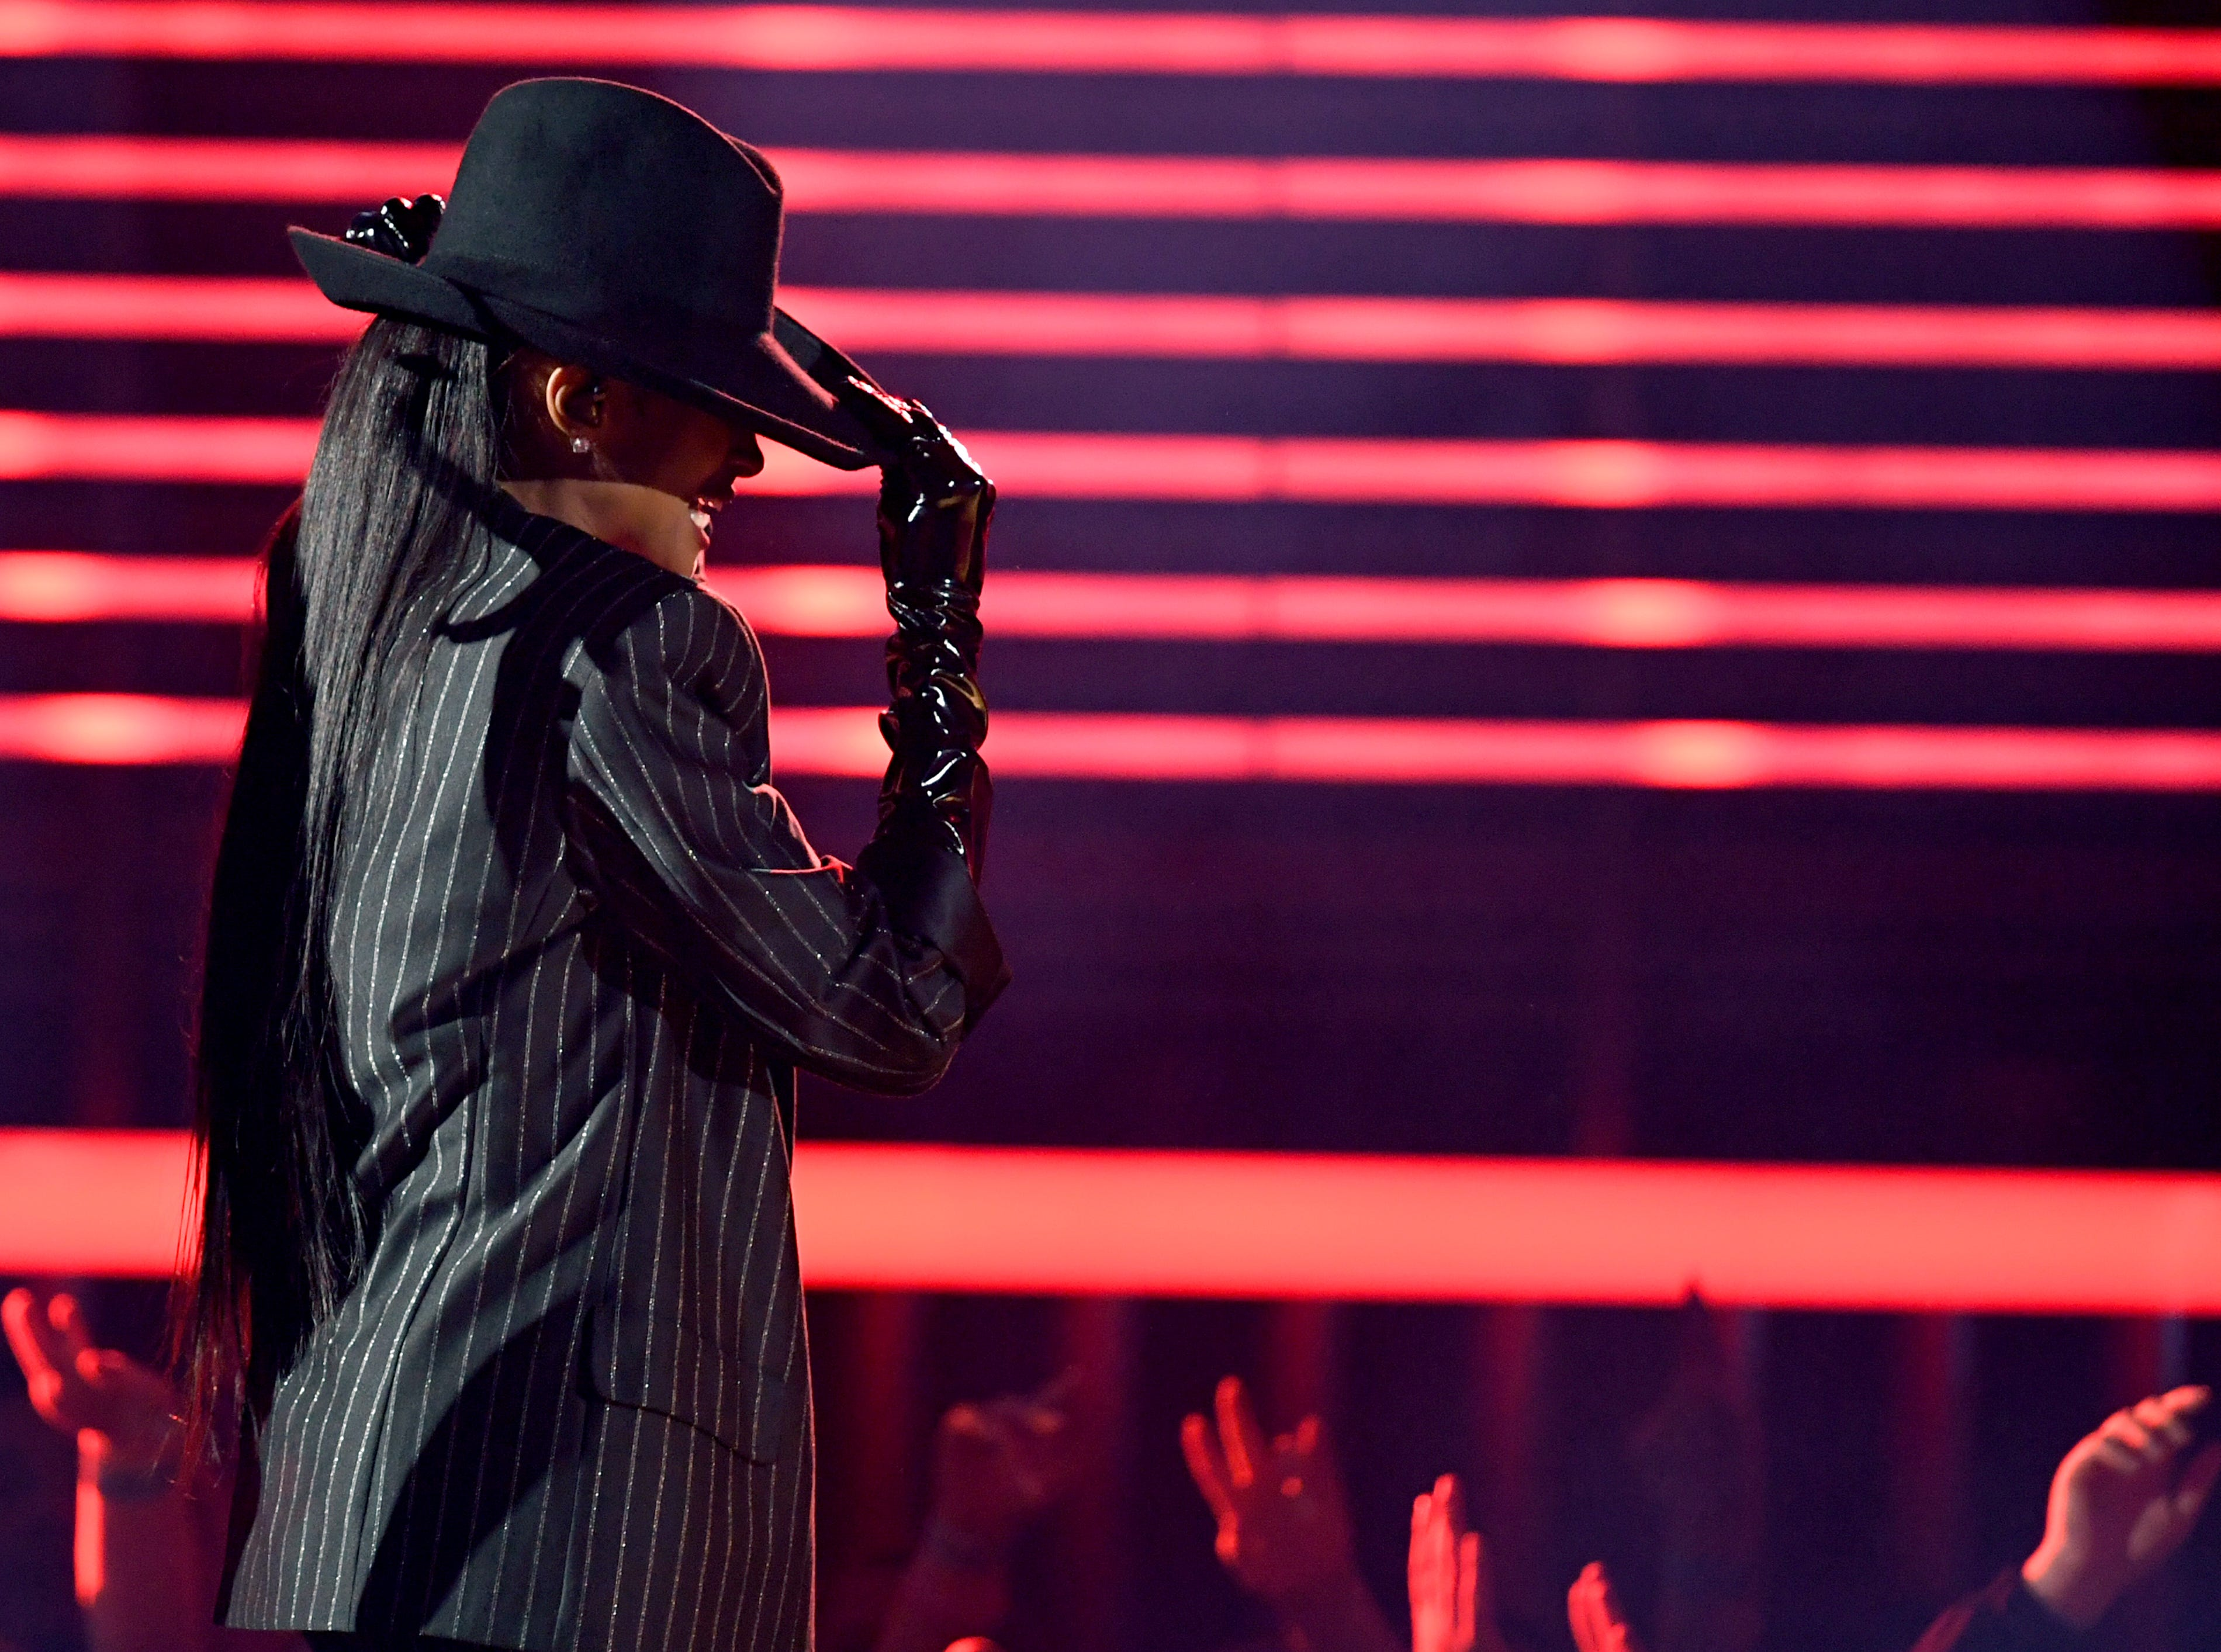 Ciara performs onstage during the 2019 Billboard Music Awards at MGM Grand Garden Arena on May 01, 2019 in Las Vegas, Nevada.